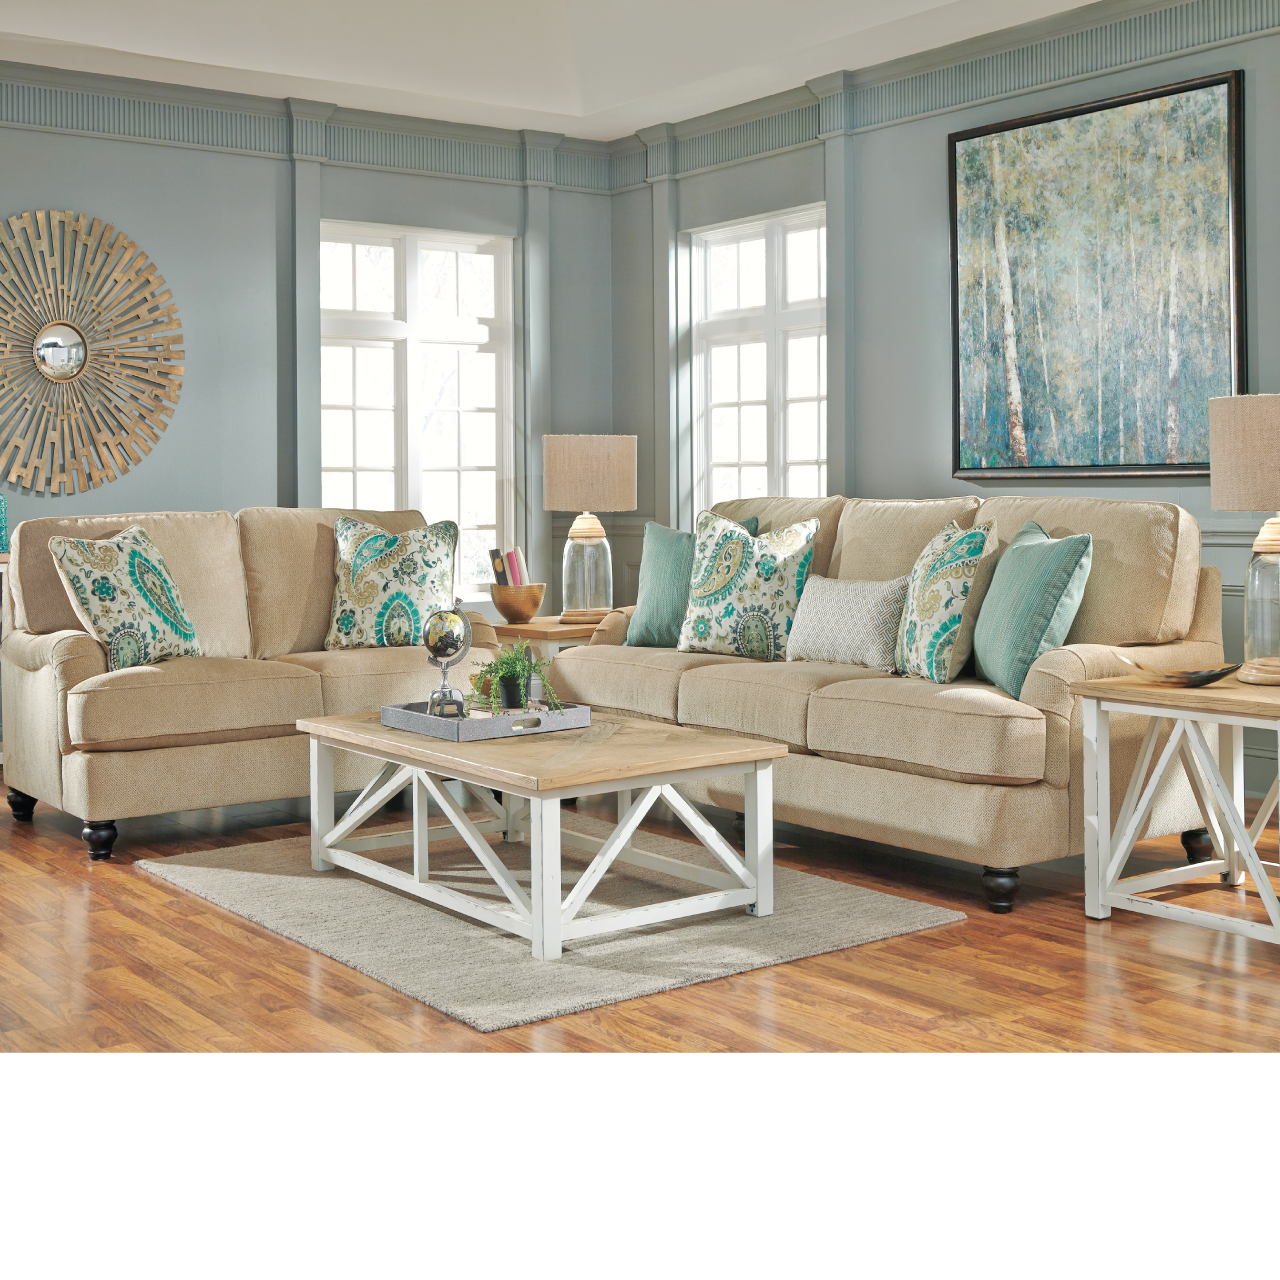 Coastal living room ideas lochian sofa by ashley for Coastal living ideas